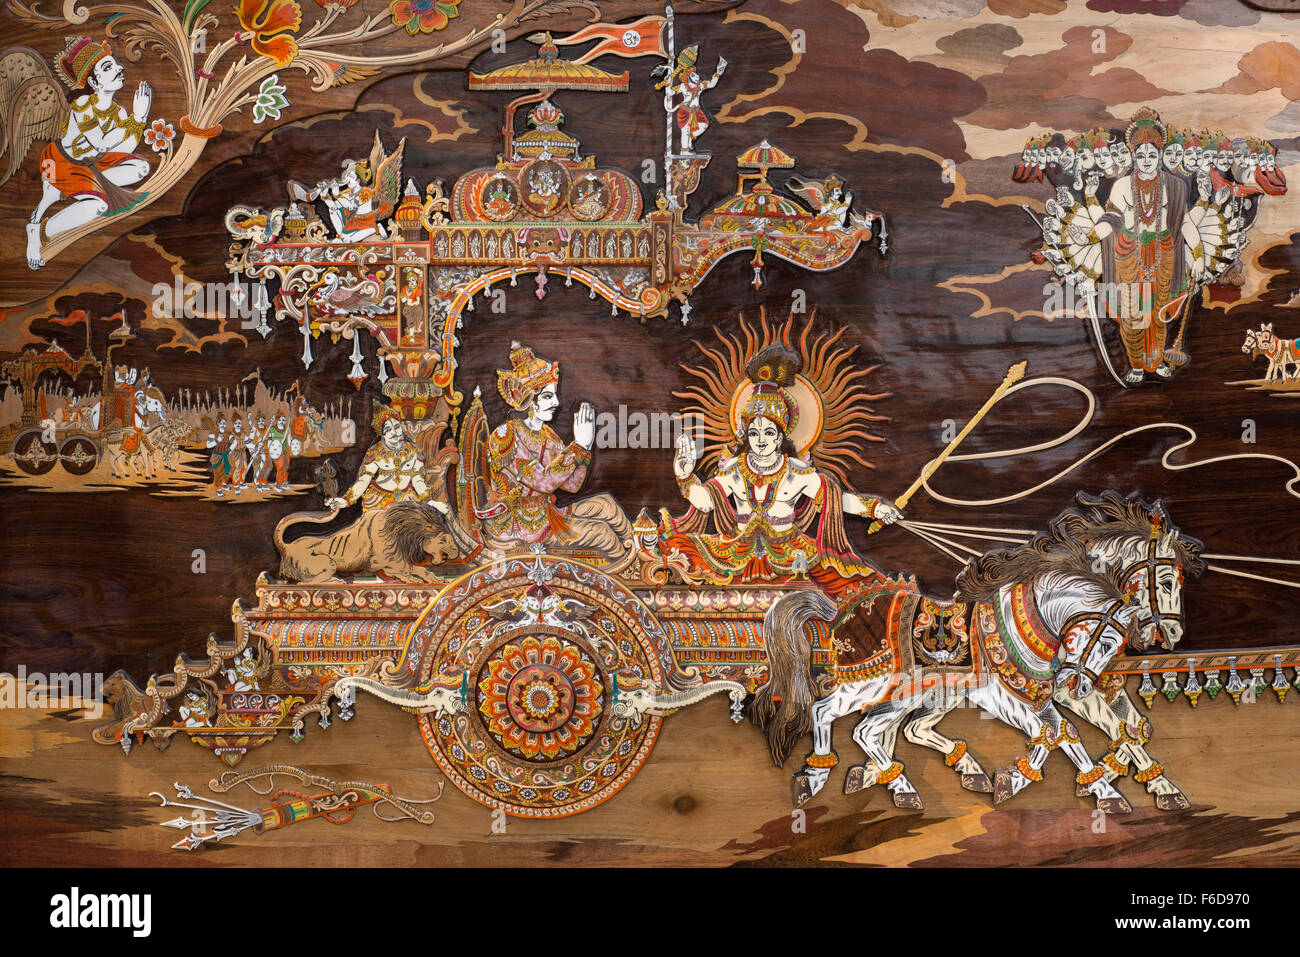 Painting of lord krishna chariot, india, asia - nmk 190786 - Stock Image